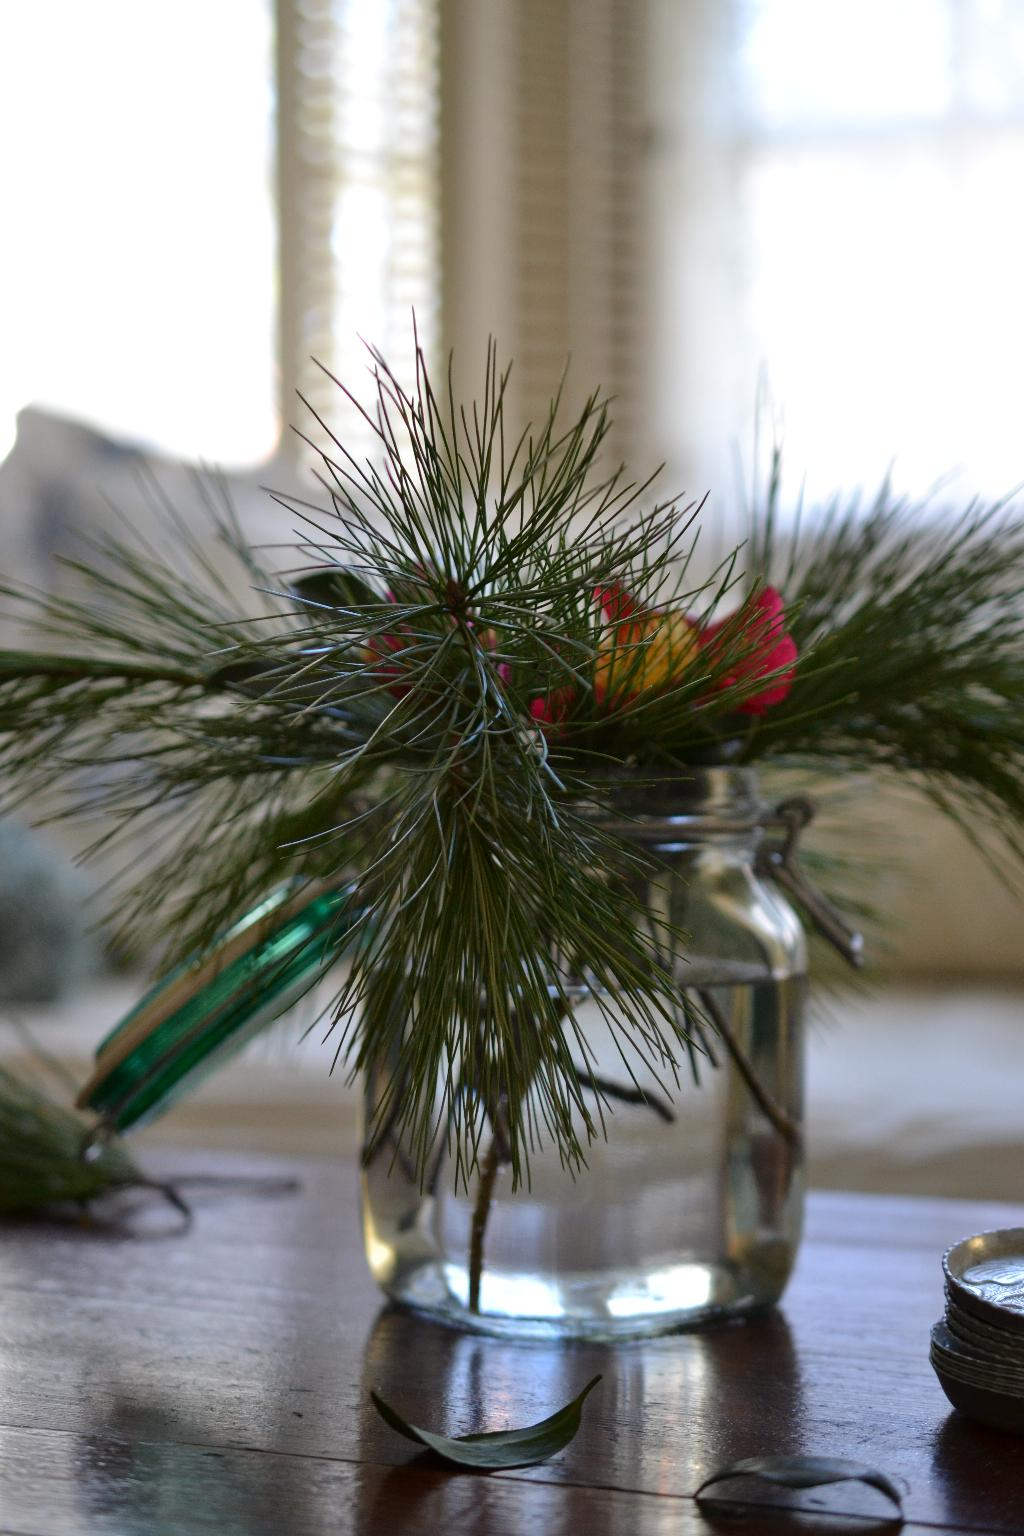 Cottage Fix - fresh pine in a vintage Italian canning jar